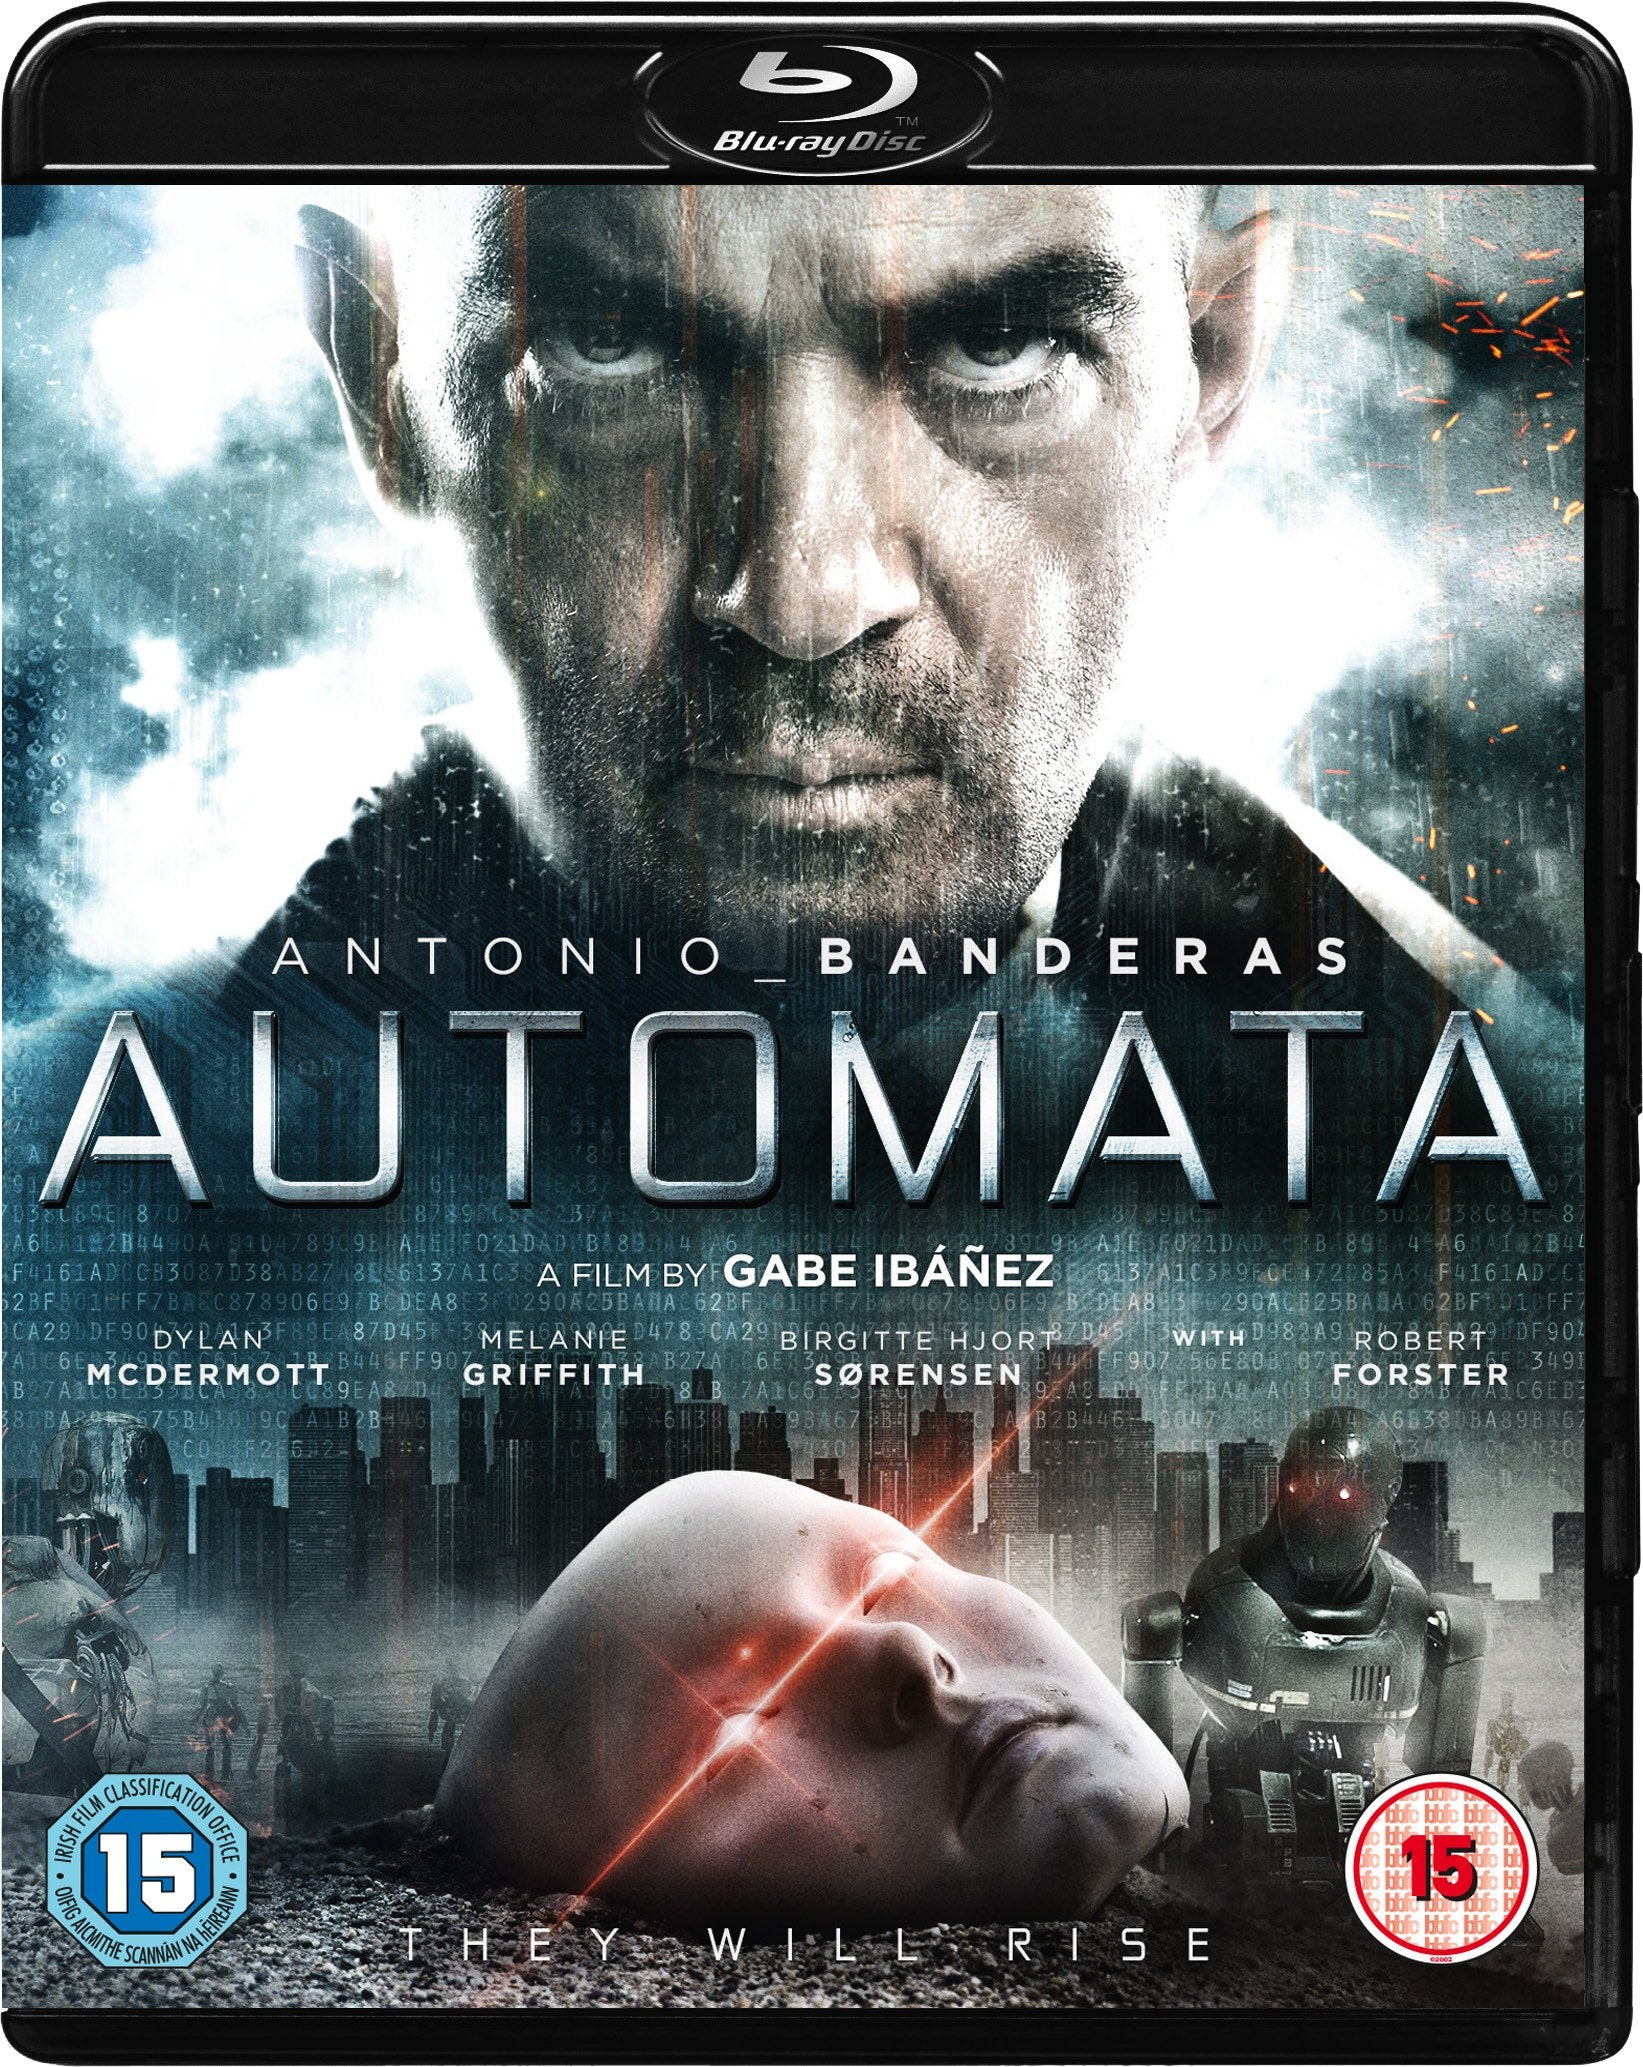 AUTOMATA on Blu-ray PLUS a Blu-ray player sweepstakes